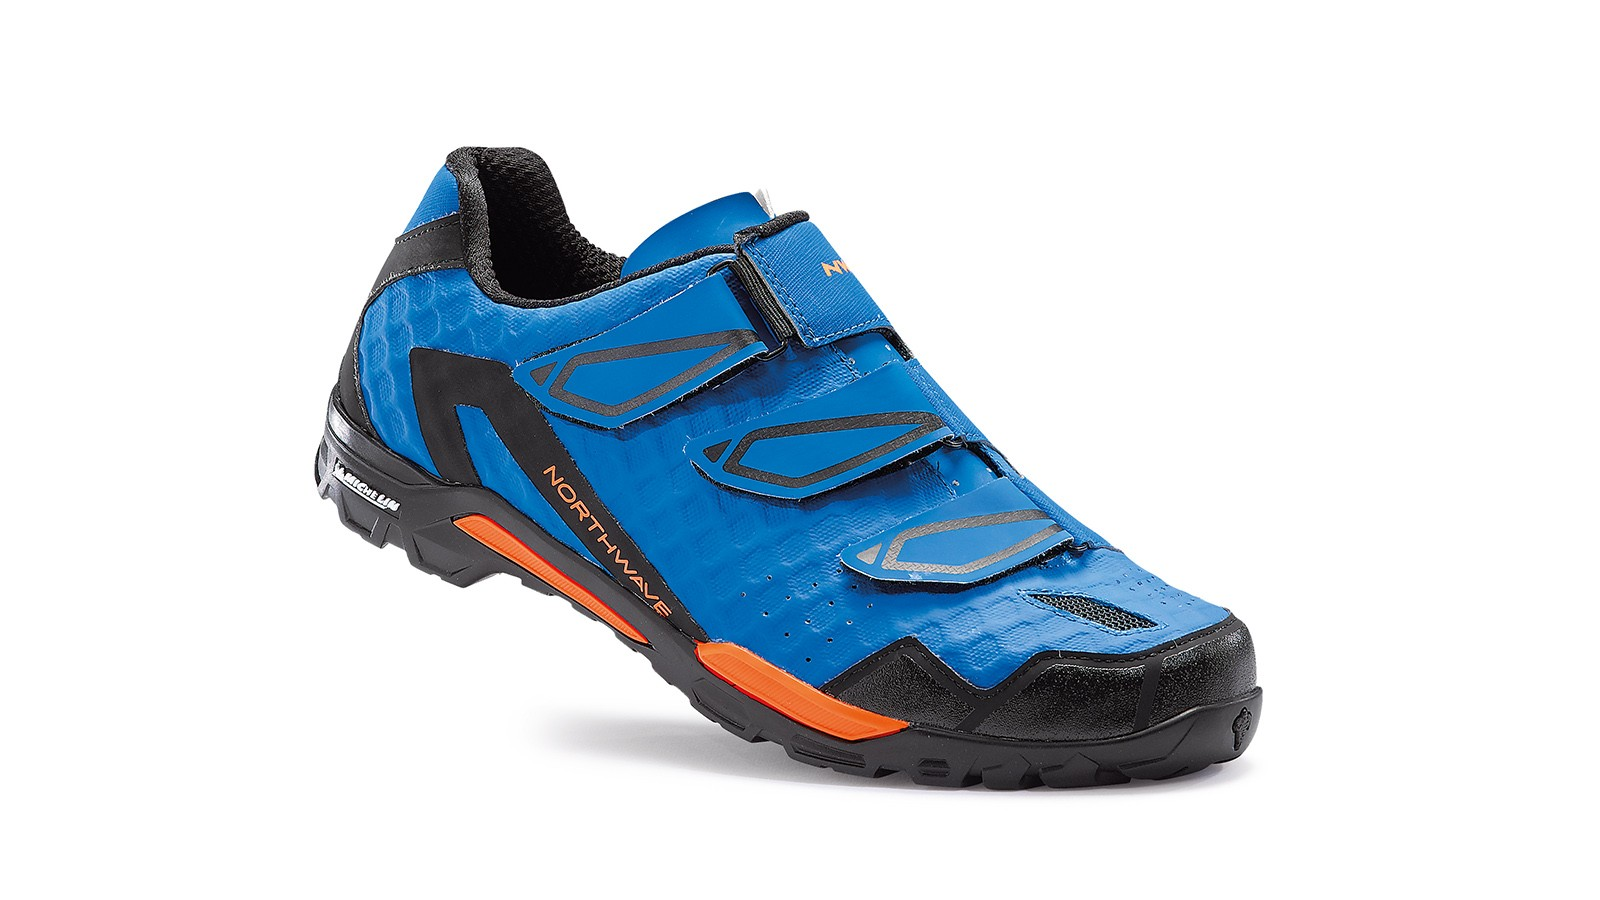 The Outcross is Northwave's newest MTB shoe platform